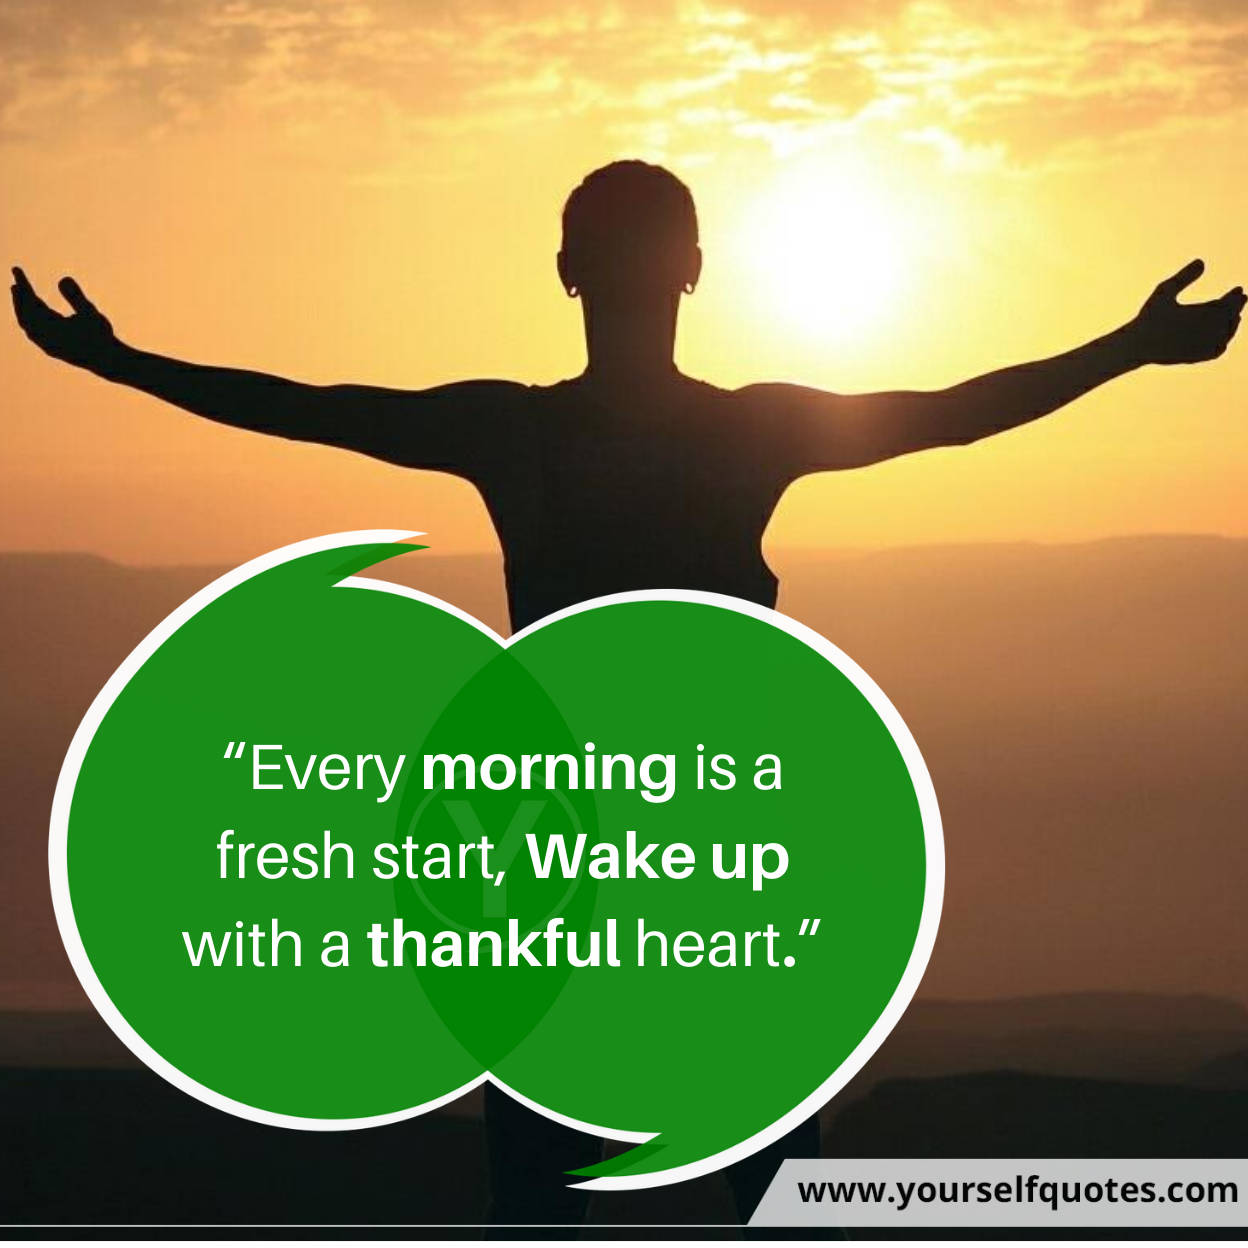 Good Morning Quotes Images To Make Your Happiest Day 2020